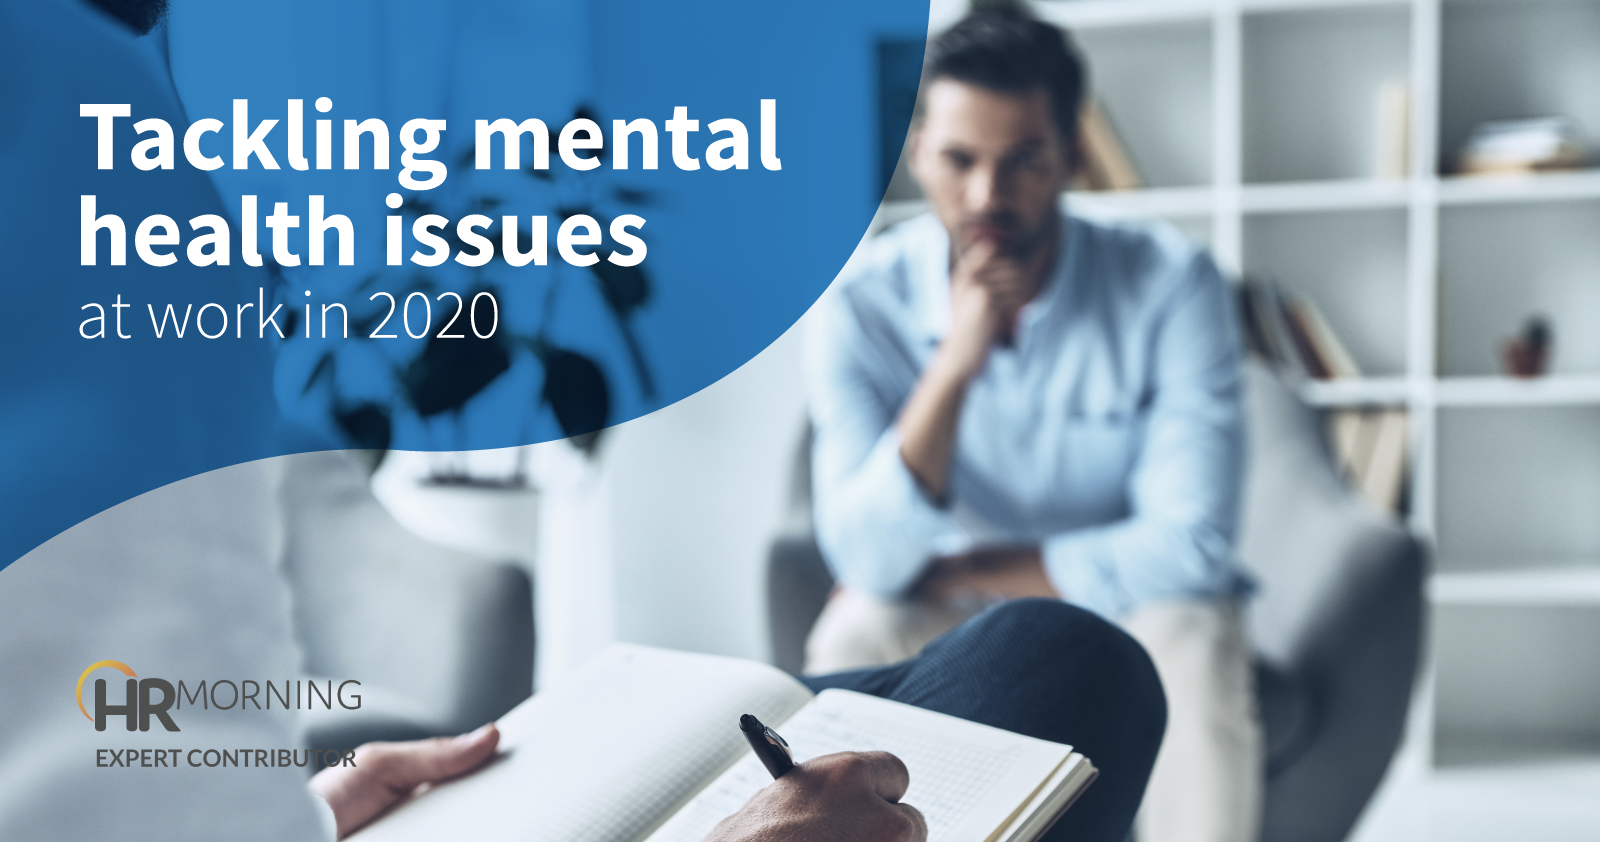 Tackling mental health issues at work in 2020